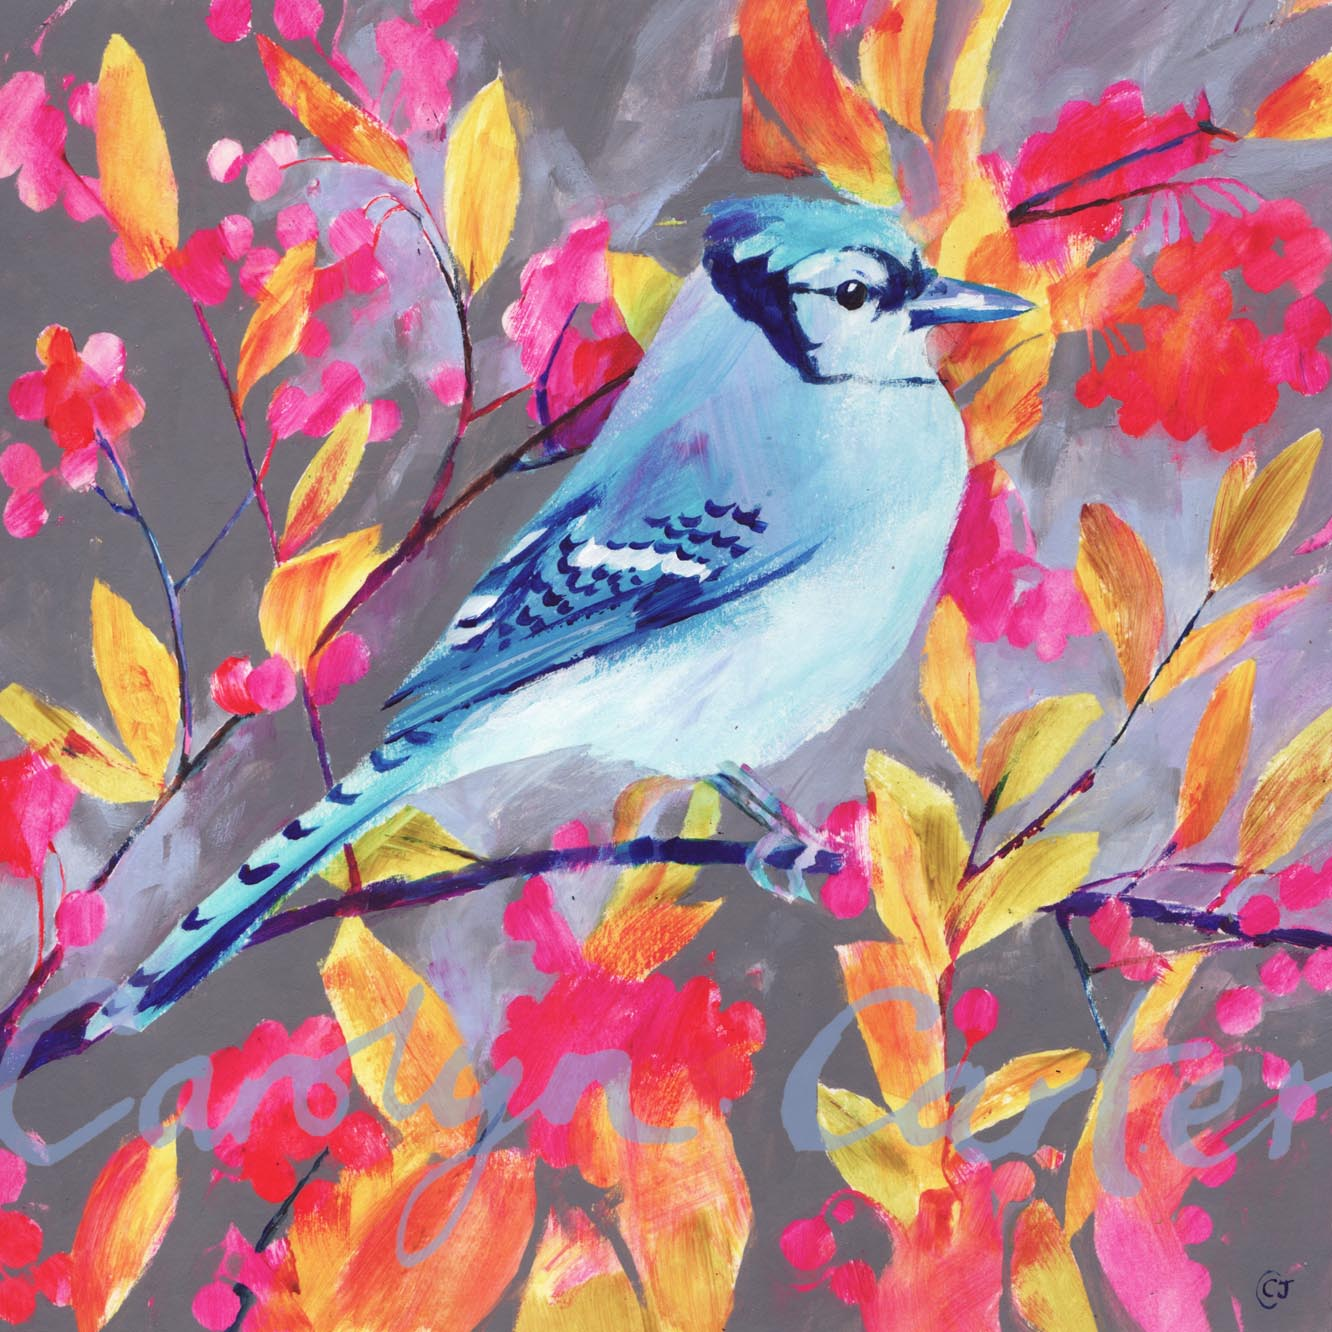 Blue Jay by Carolyn Carter